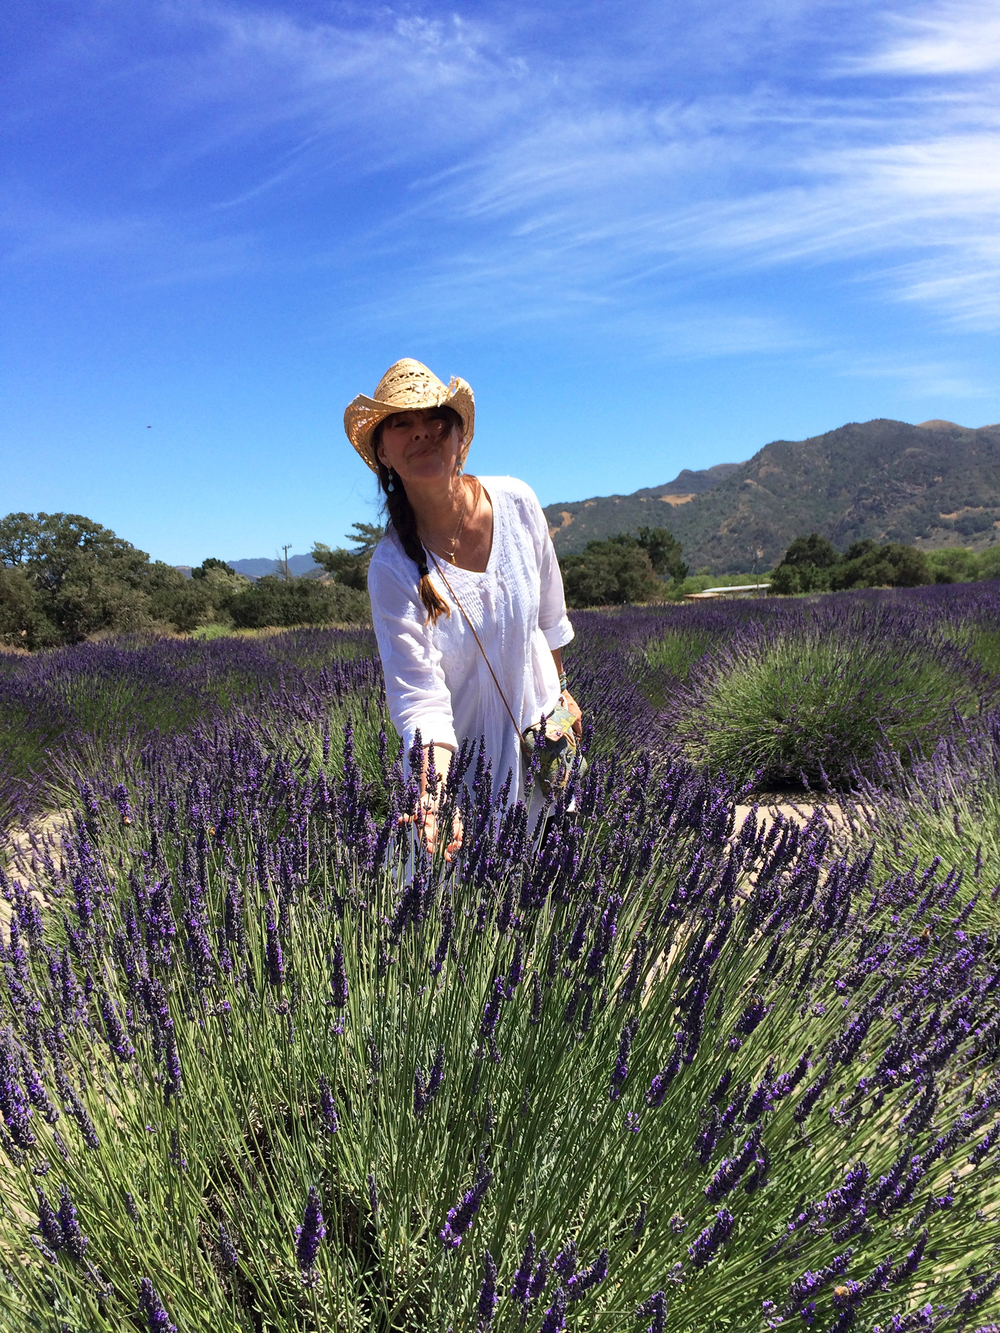 Discovering new lavender growers, Santa ynez valley, ca